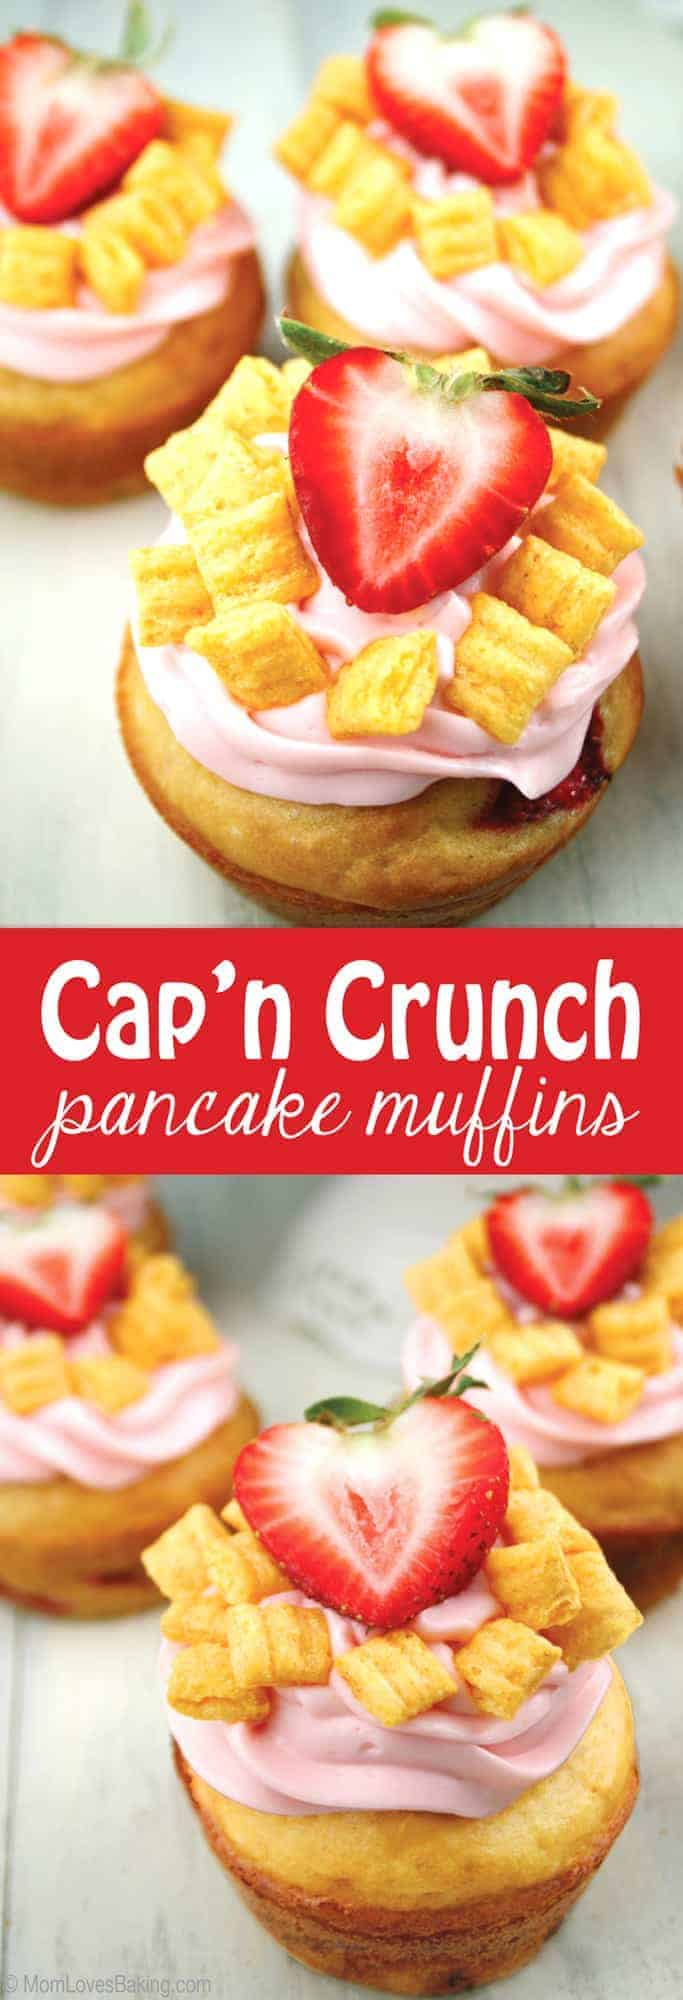 Capn-Crunch-Pancake-Muffins-Long